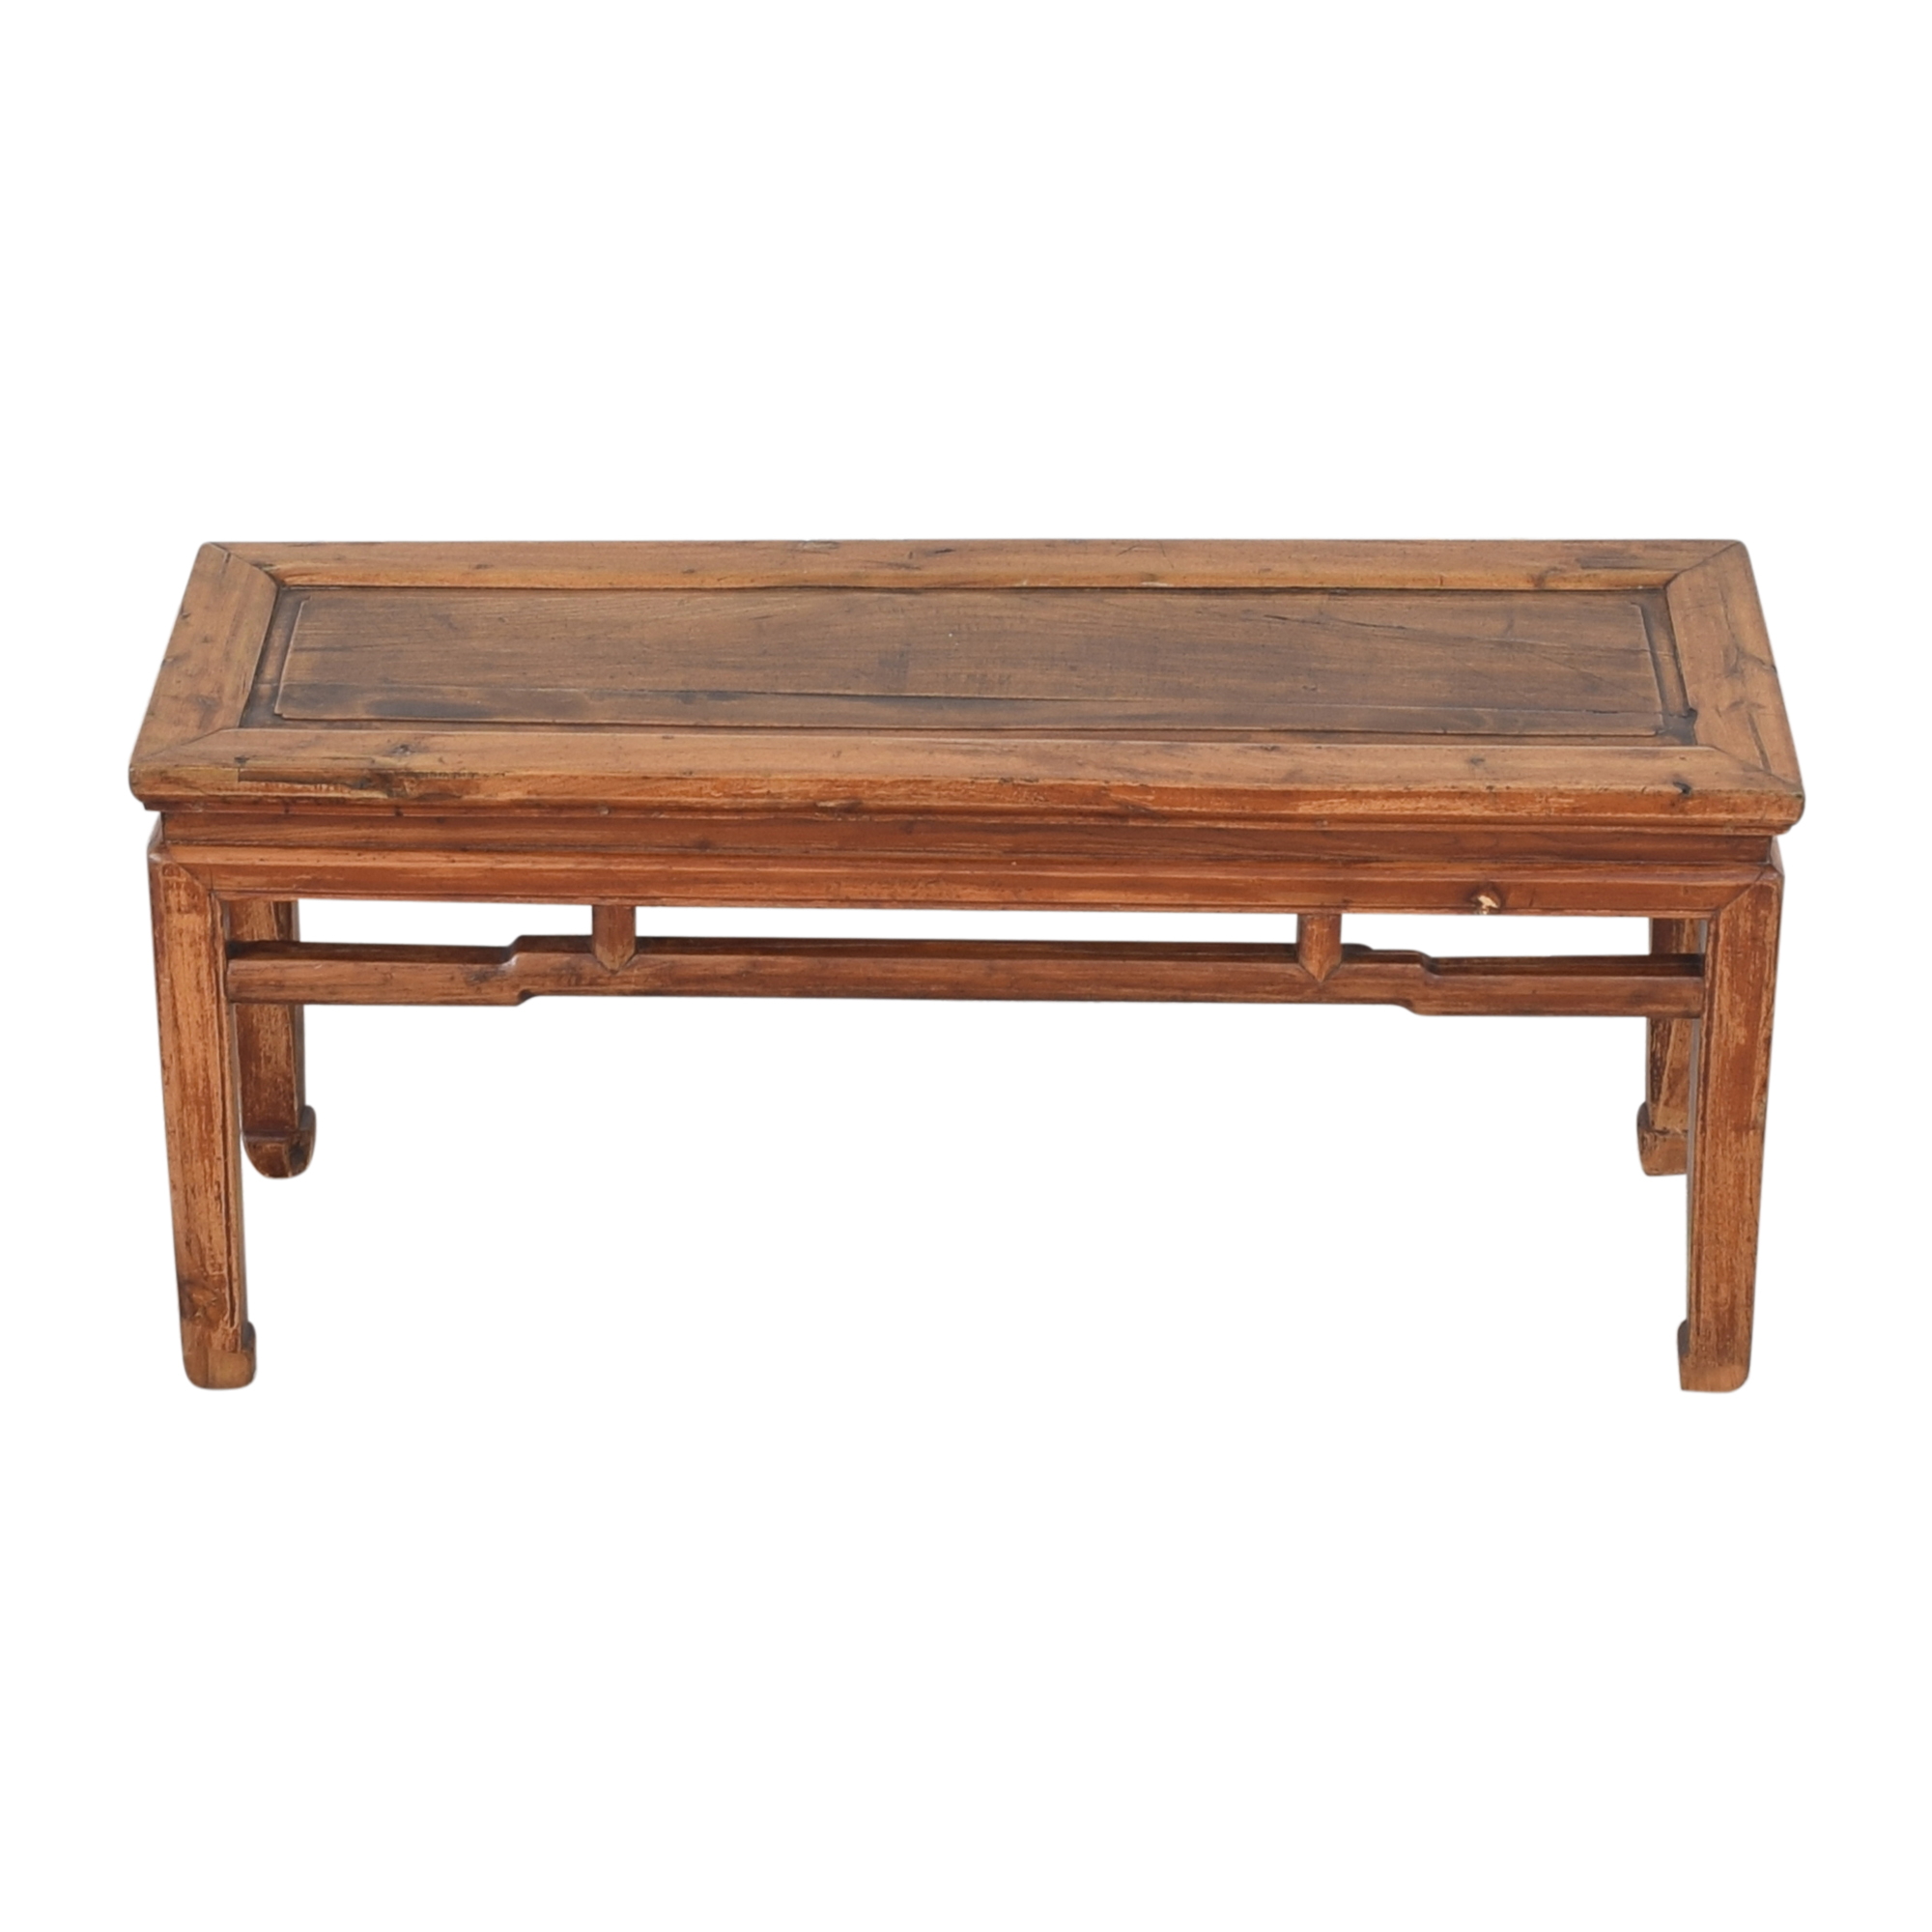 Rustic Console Table / Tables